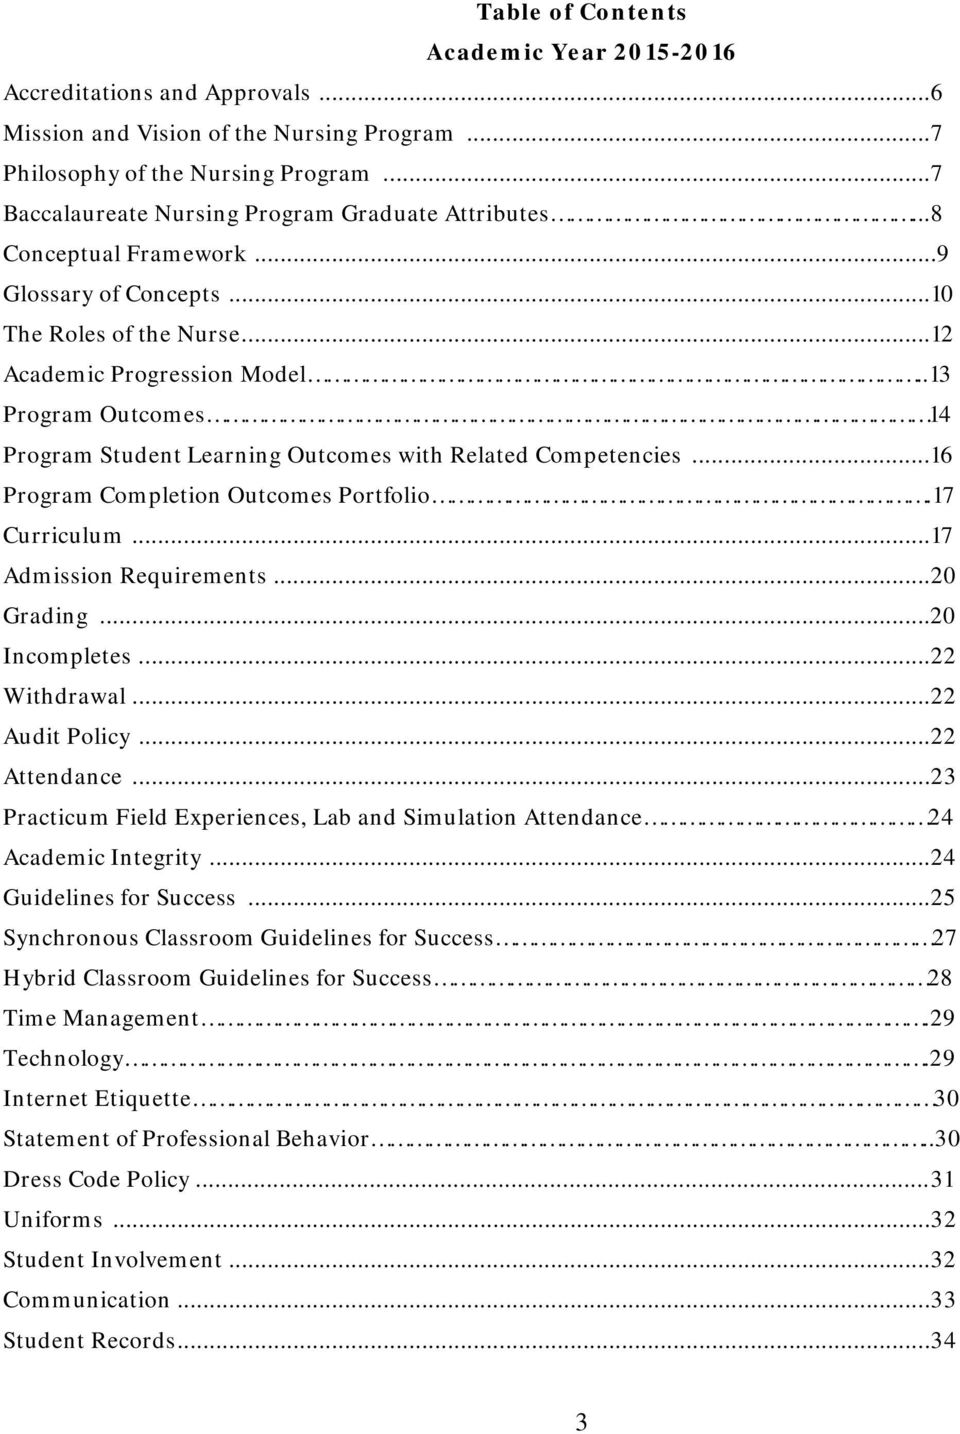 .13 Program Outcomes 14 Program Student Learning Outcomes with Related Competencies...16 Program Completion Outcomes Portfolio.17 Curriculum...17 Admission Requirements...20 Grading...20 Incompletes.